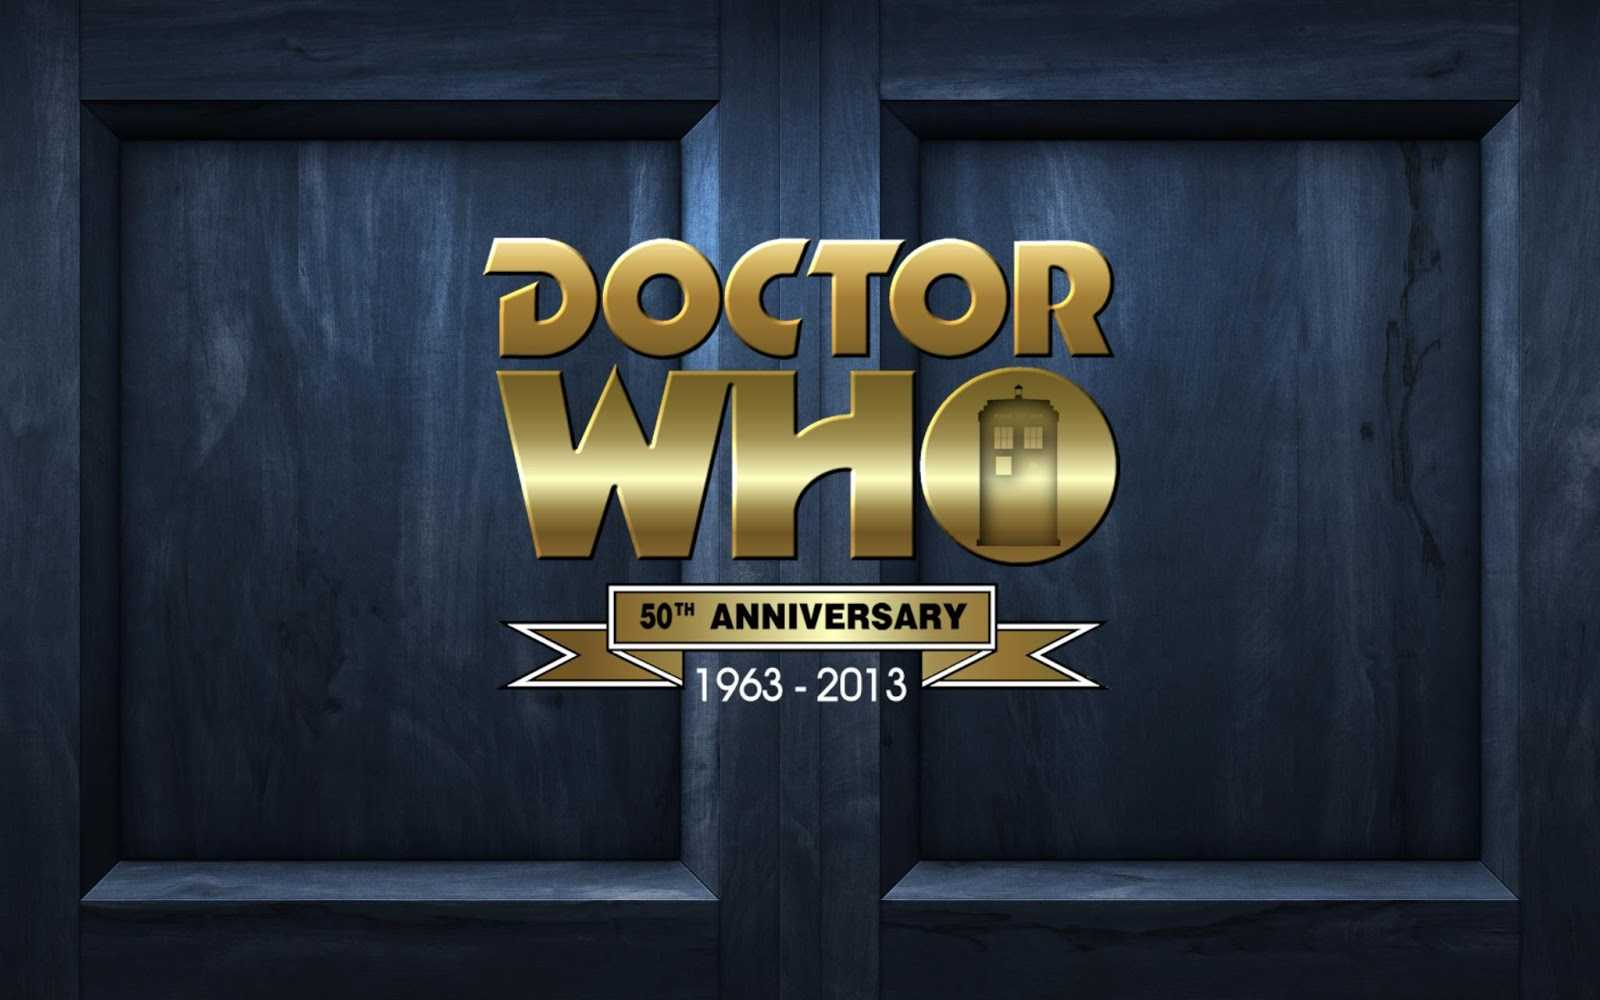 Doctor Who Takes Over The Airwaves In November Leading Up To The 50th